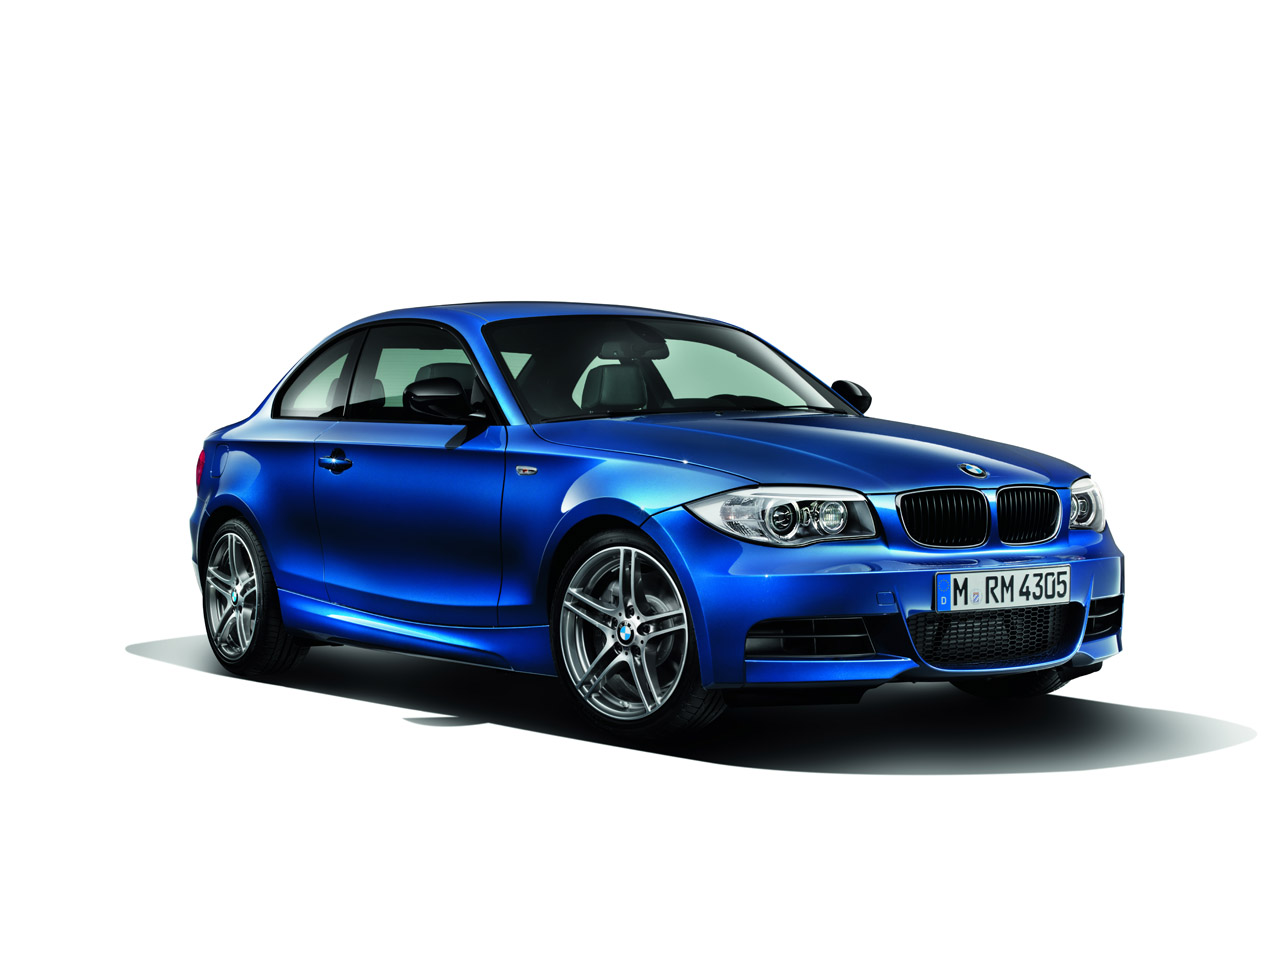 BMW 1 series 135is 2012 photo - 3